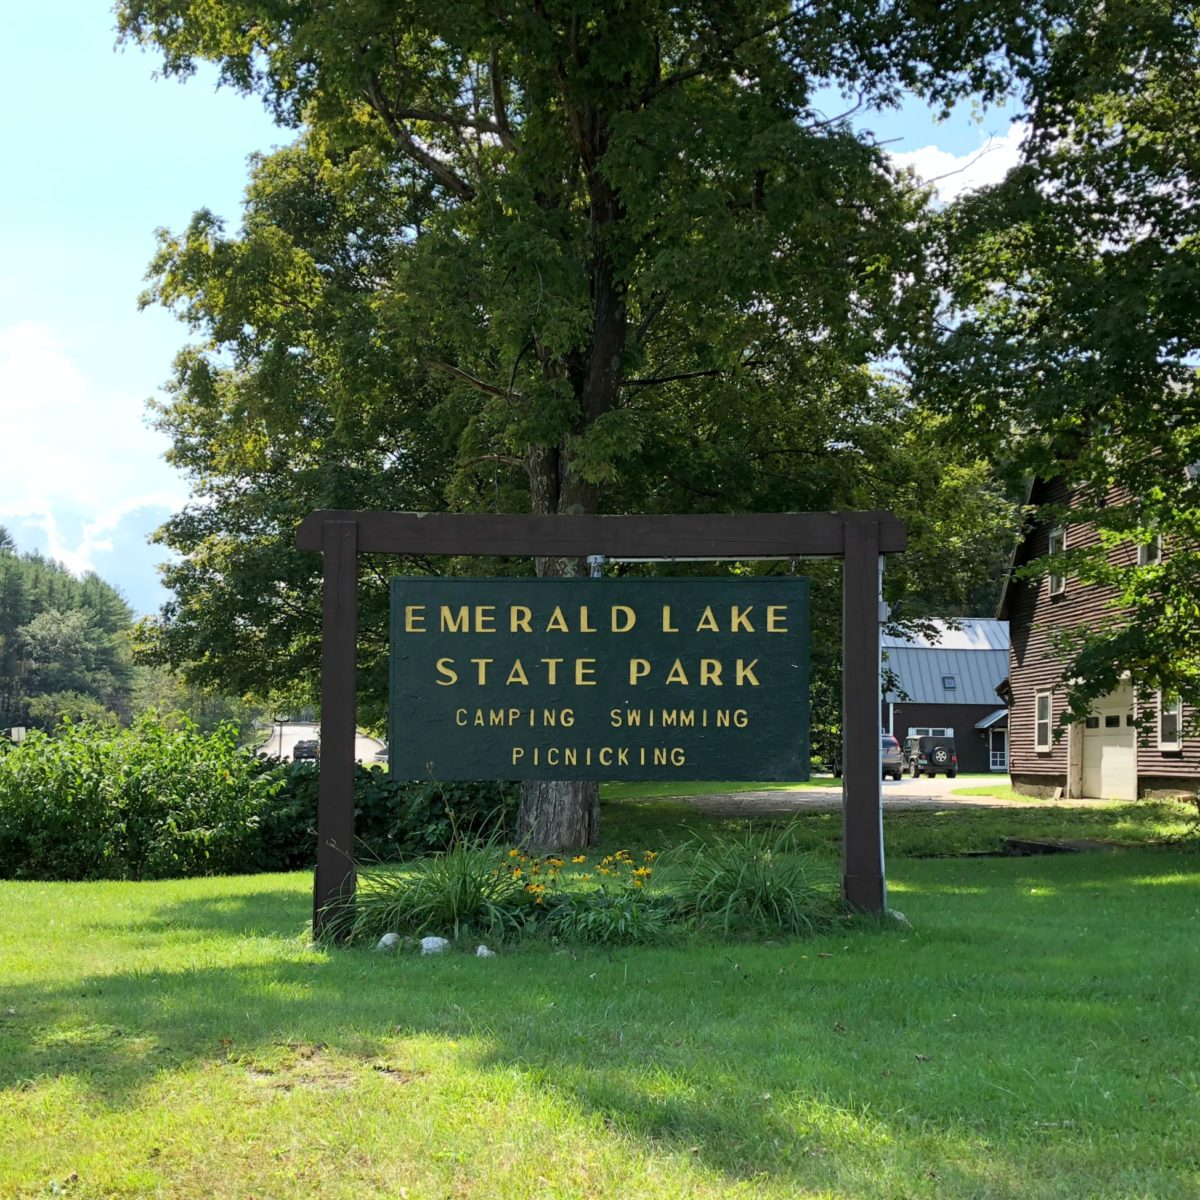 Emerald Lake State Park